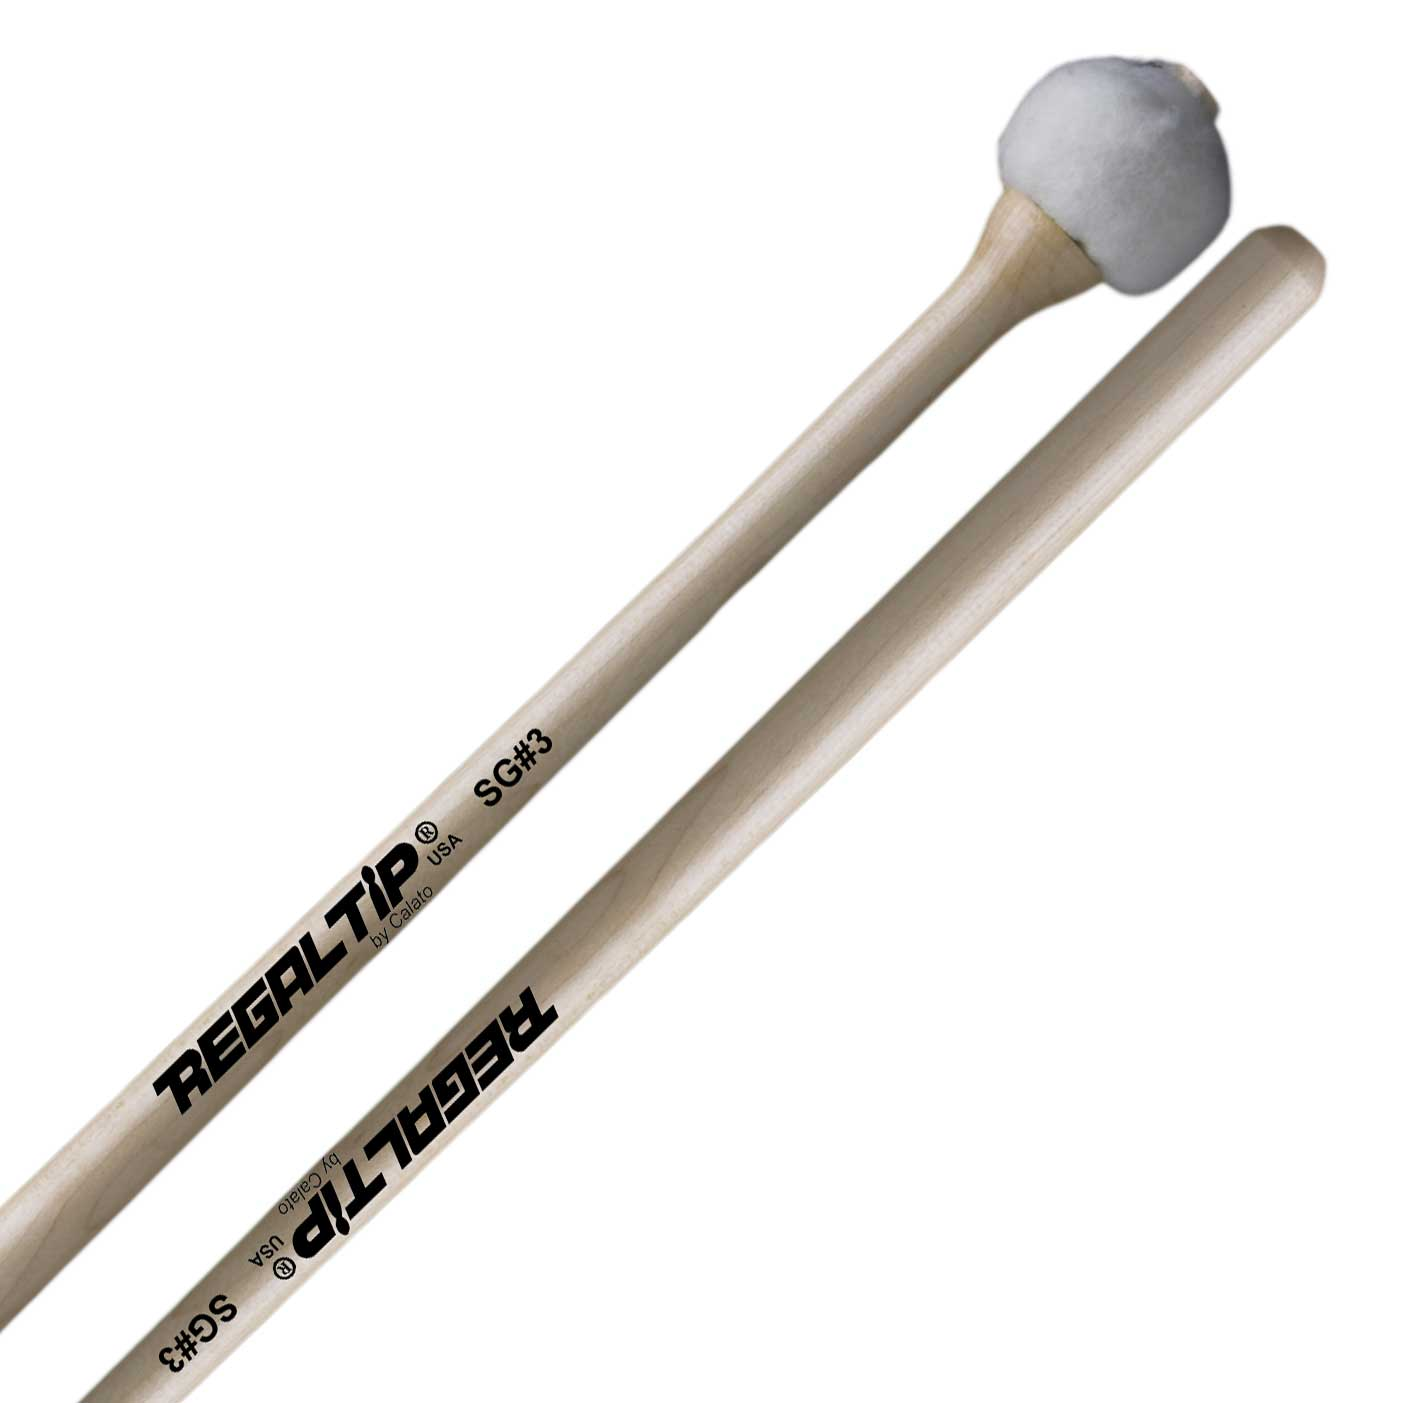 Regal Tip Saul Goodman Signature #3 General Timpani Mallets